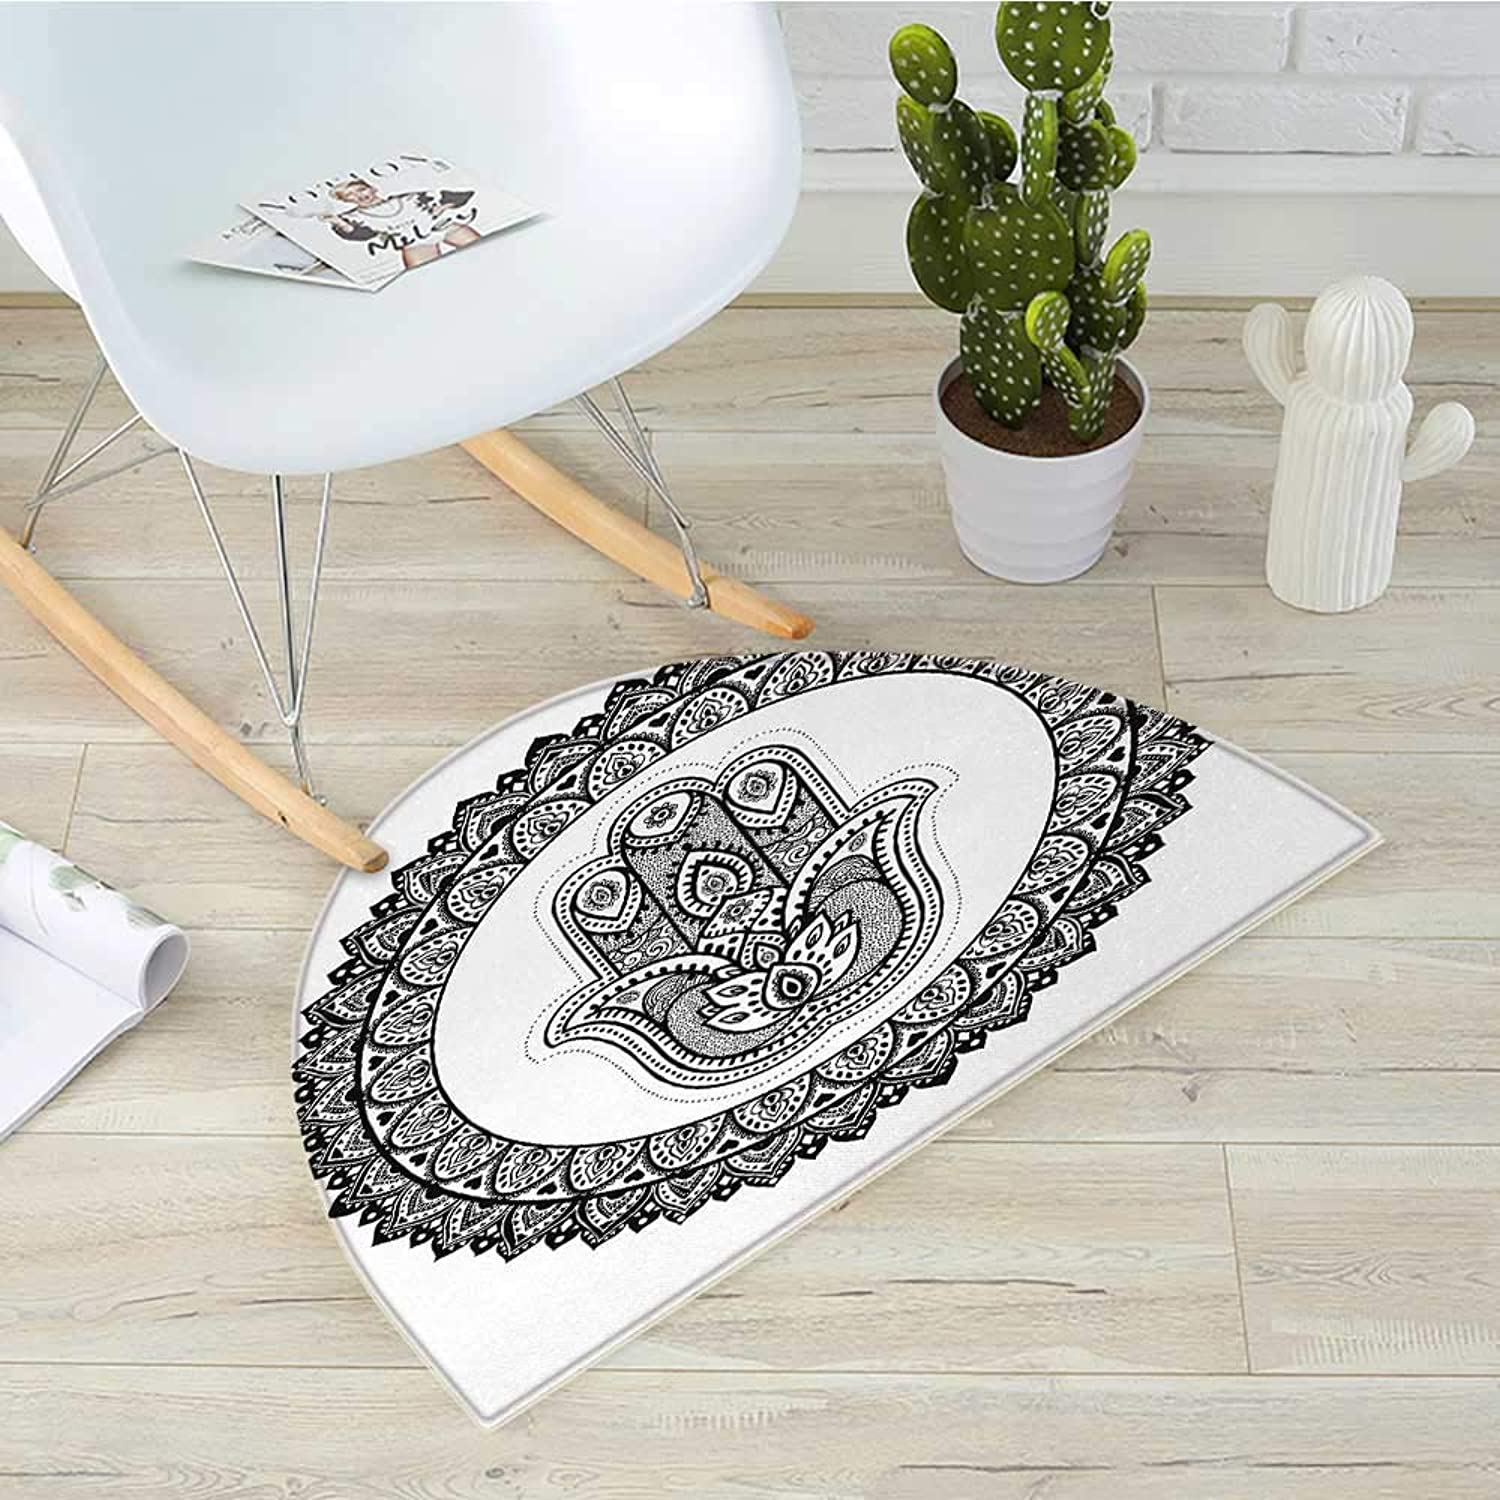 Hamsa Half Round Door mats Ring Shapes with Floral Motifs Ancient Ethnic Culture Traditional Symbol Monochrome Bathroom Mat H 39.3  xD 59  Black White